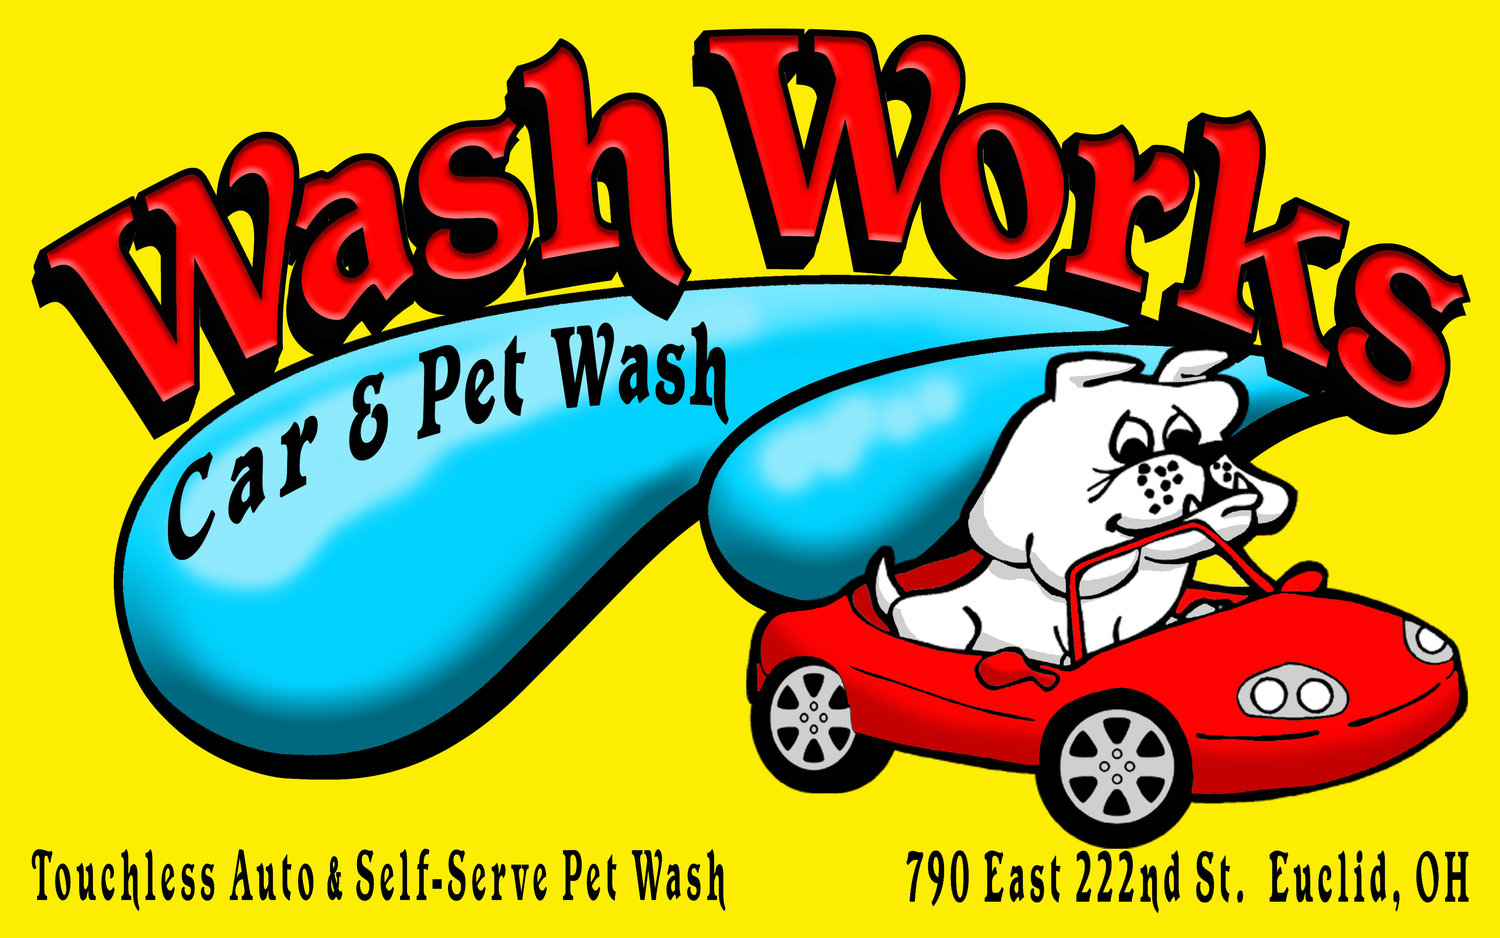 Wash Works Car & Pet Wash